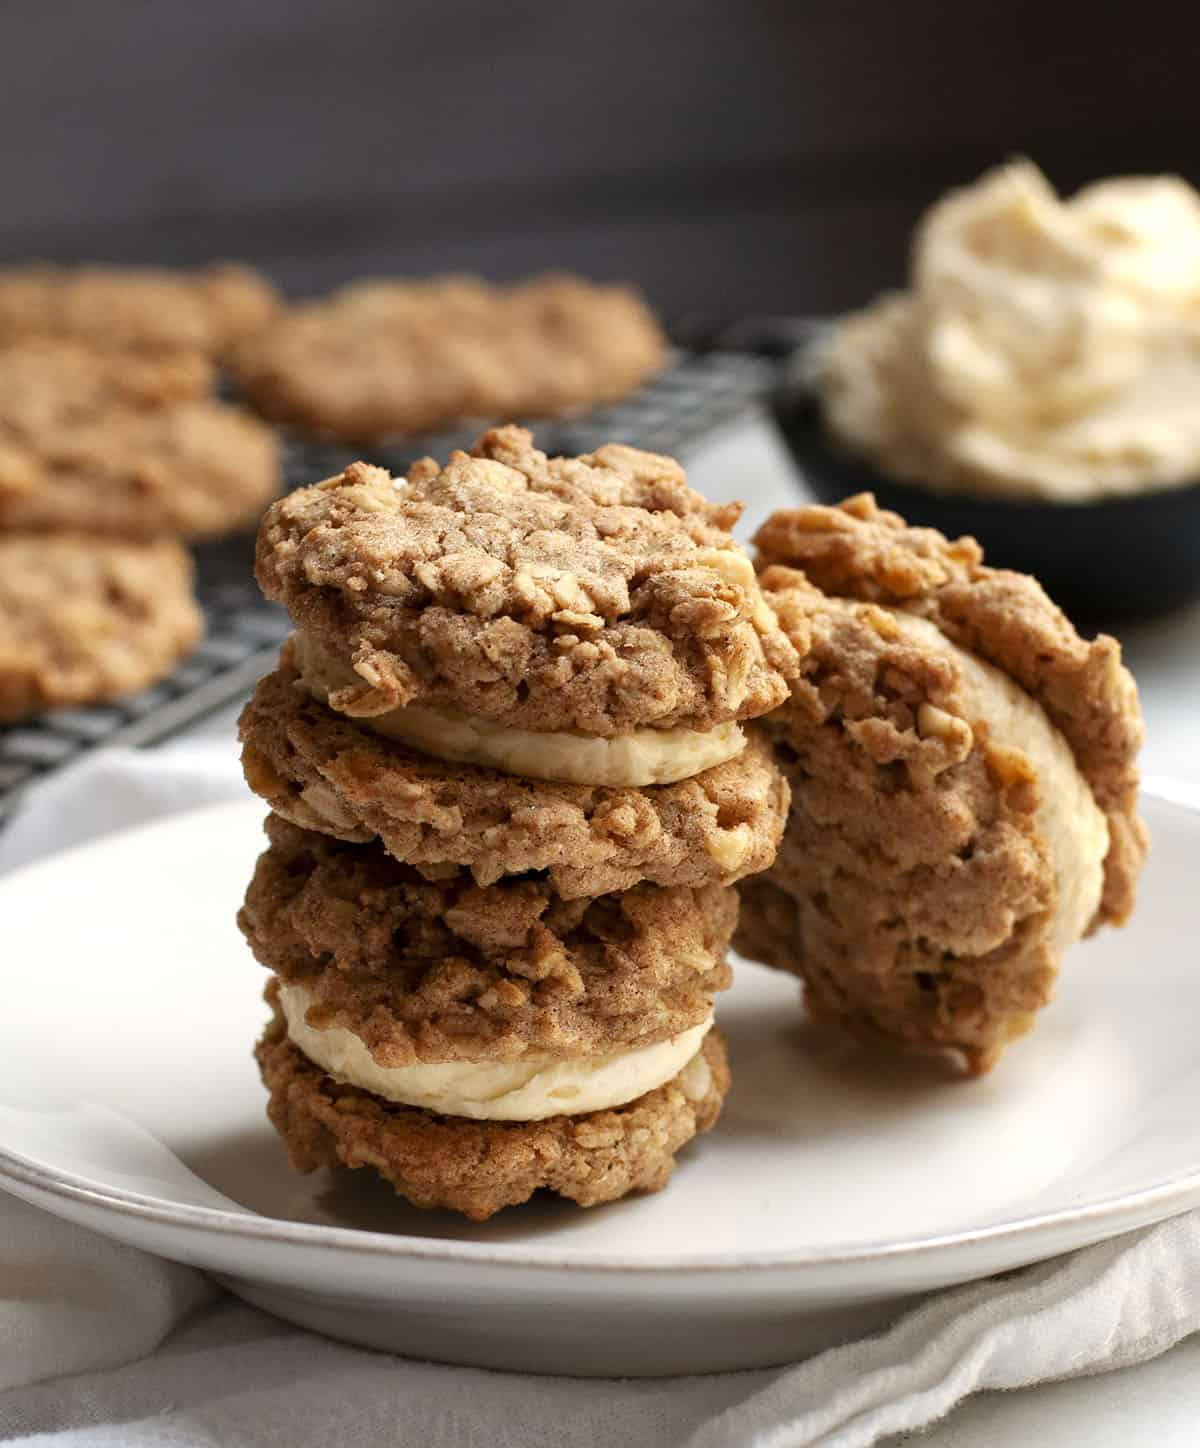 Oatmeal Sandwich Cookies stacked on a white plate